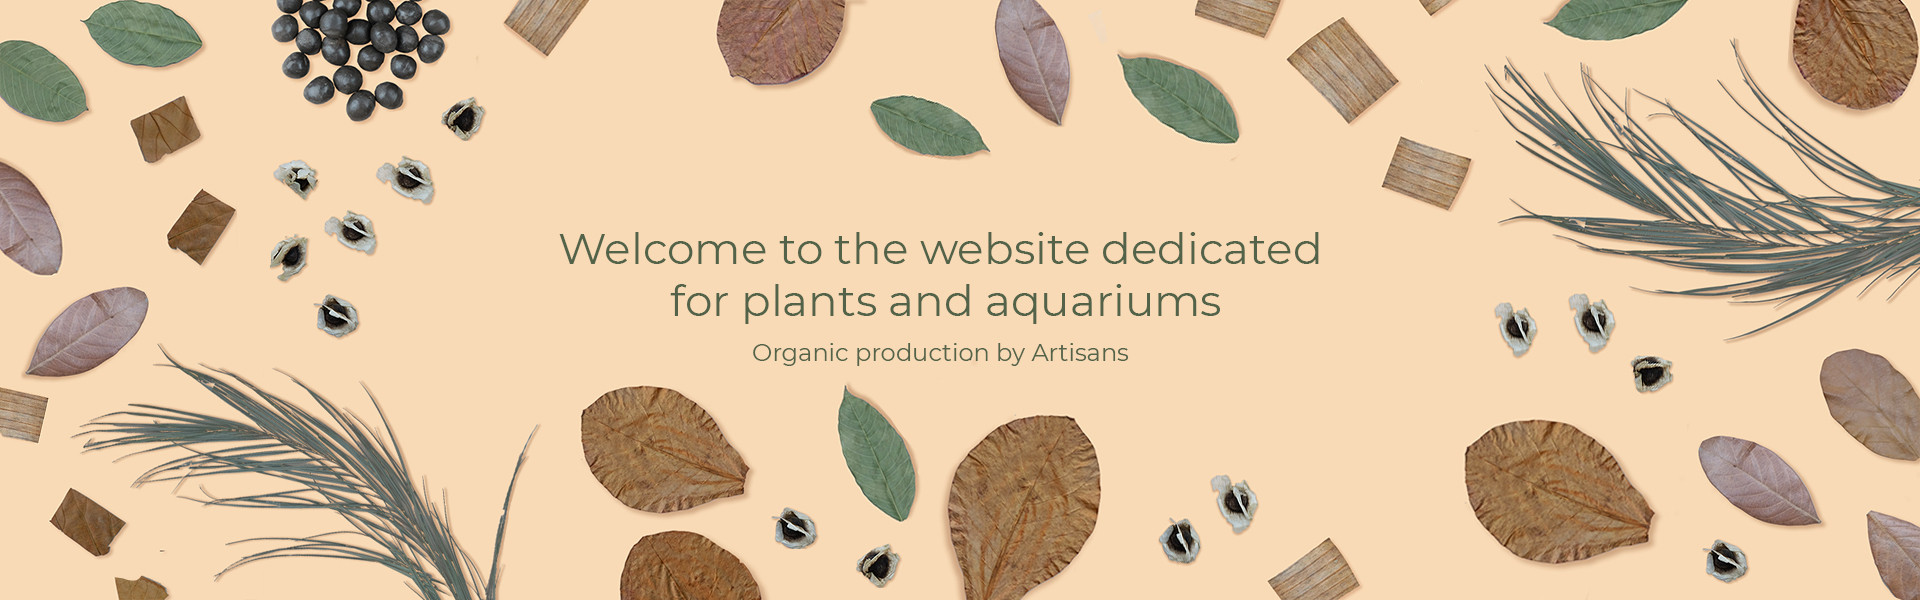 Welcome to the website dedicate for plants and aquariums. Organic productions By Artisans